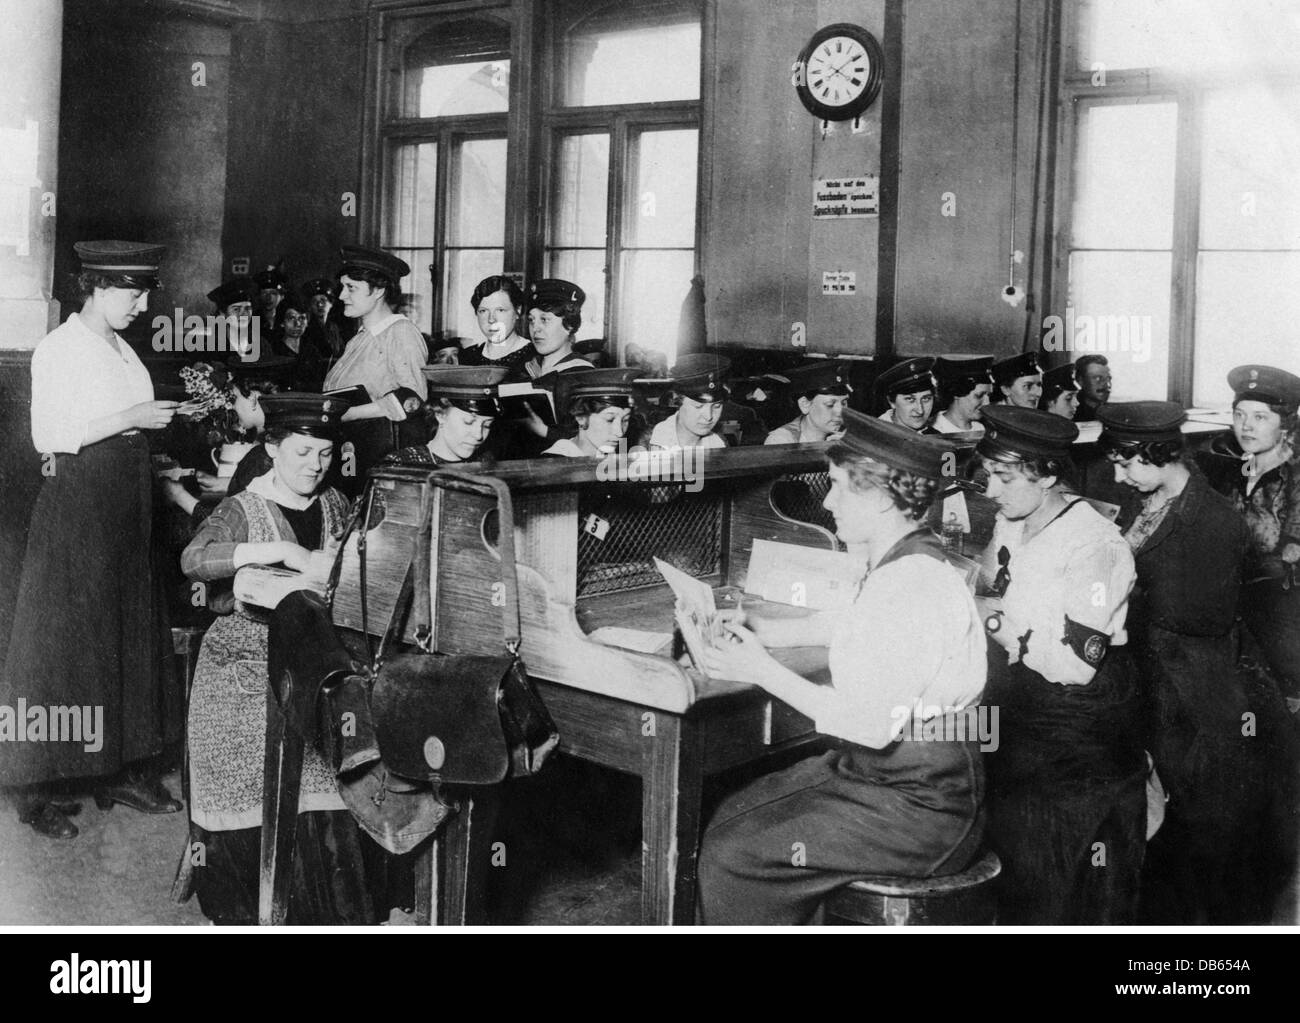 mail / post, postwomen, women sorting military mail during World War I, Germany, circa 1916, Additional-Rights-Clearences Stock Photo